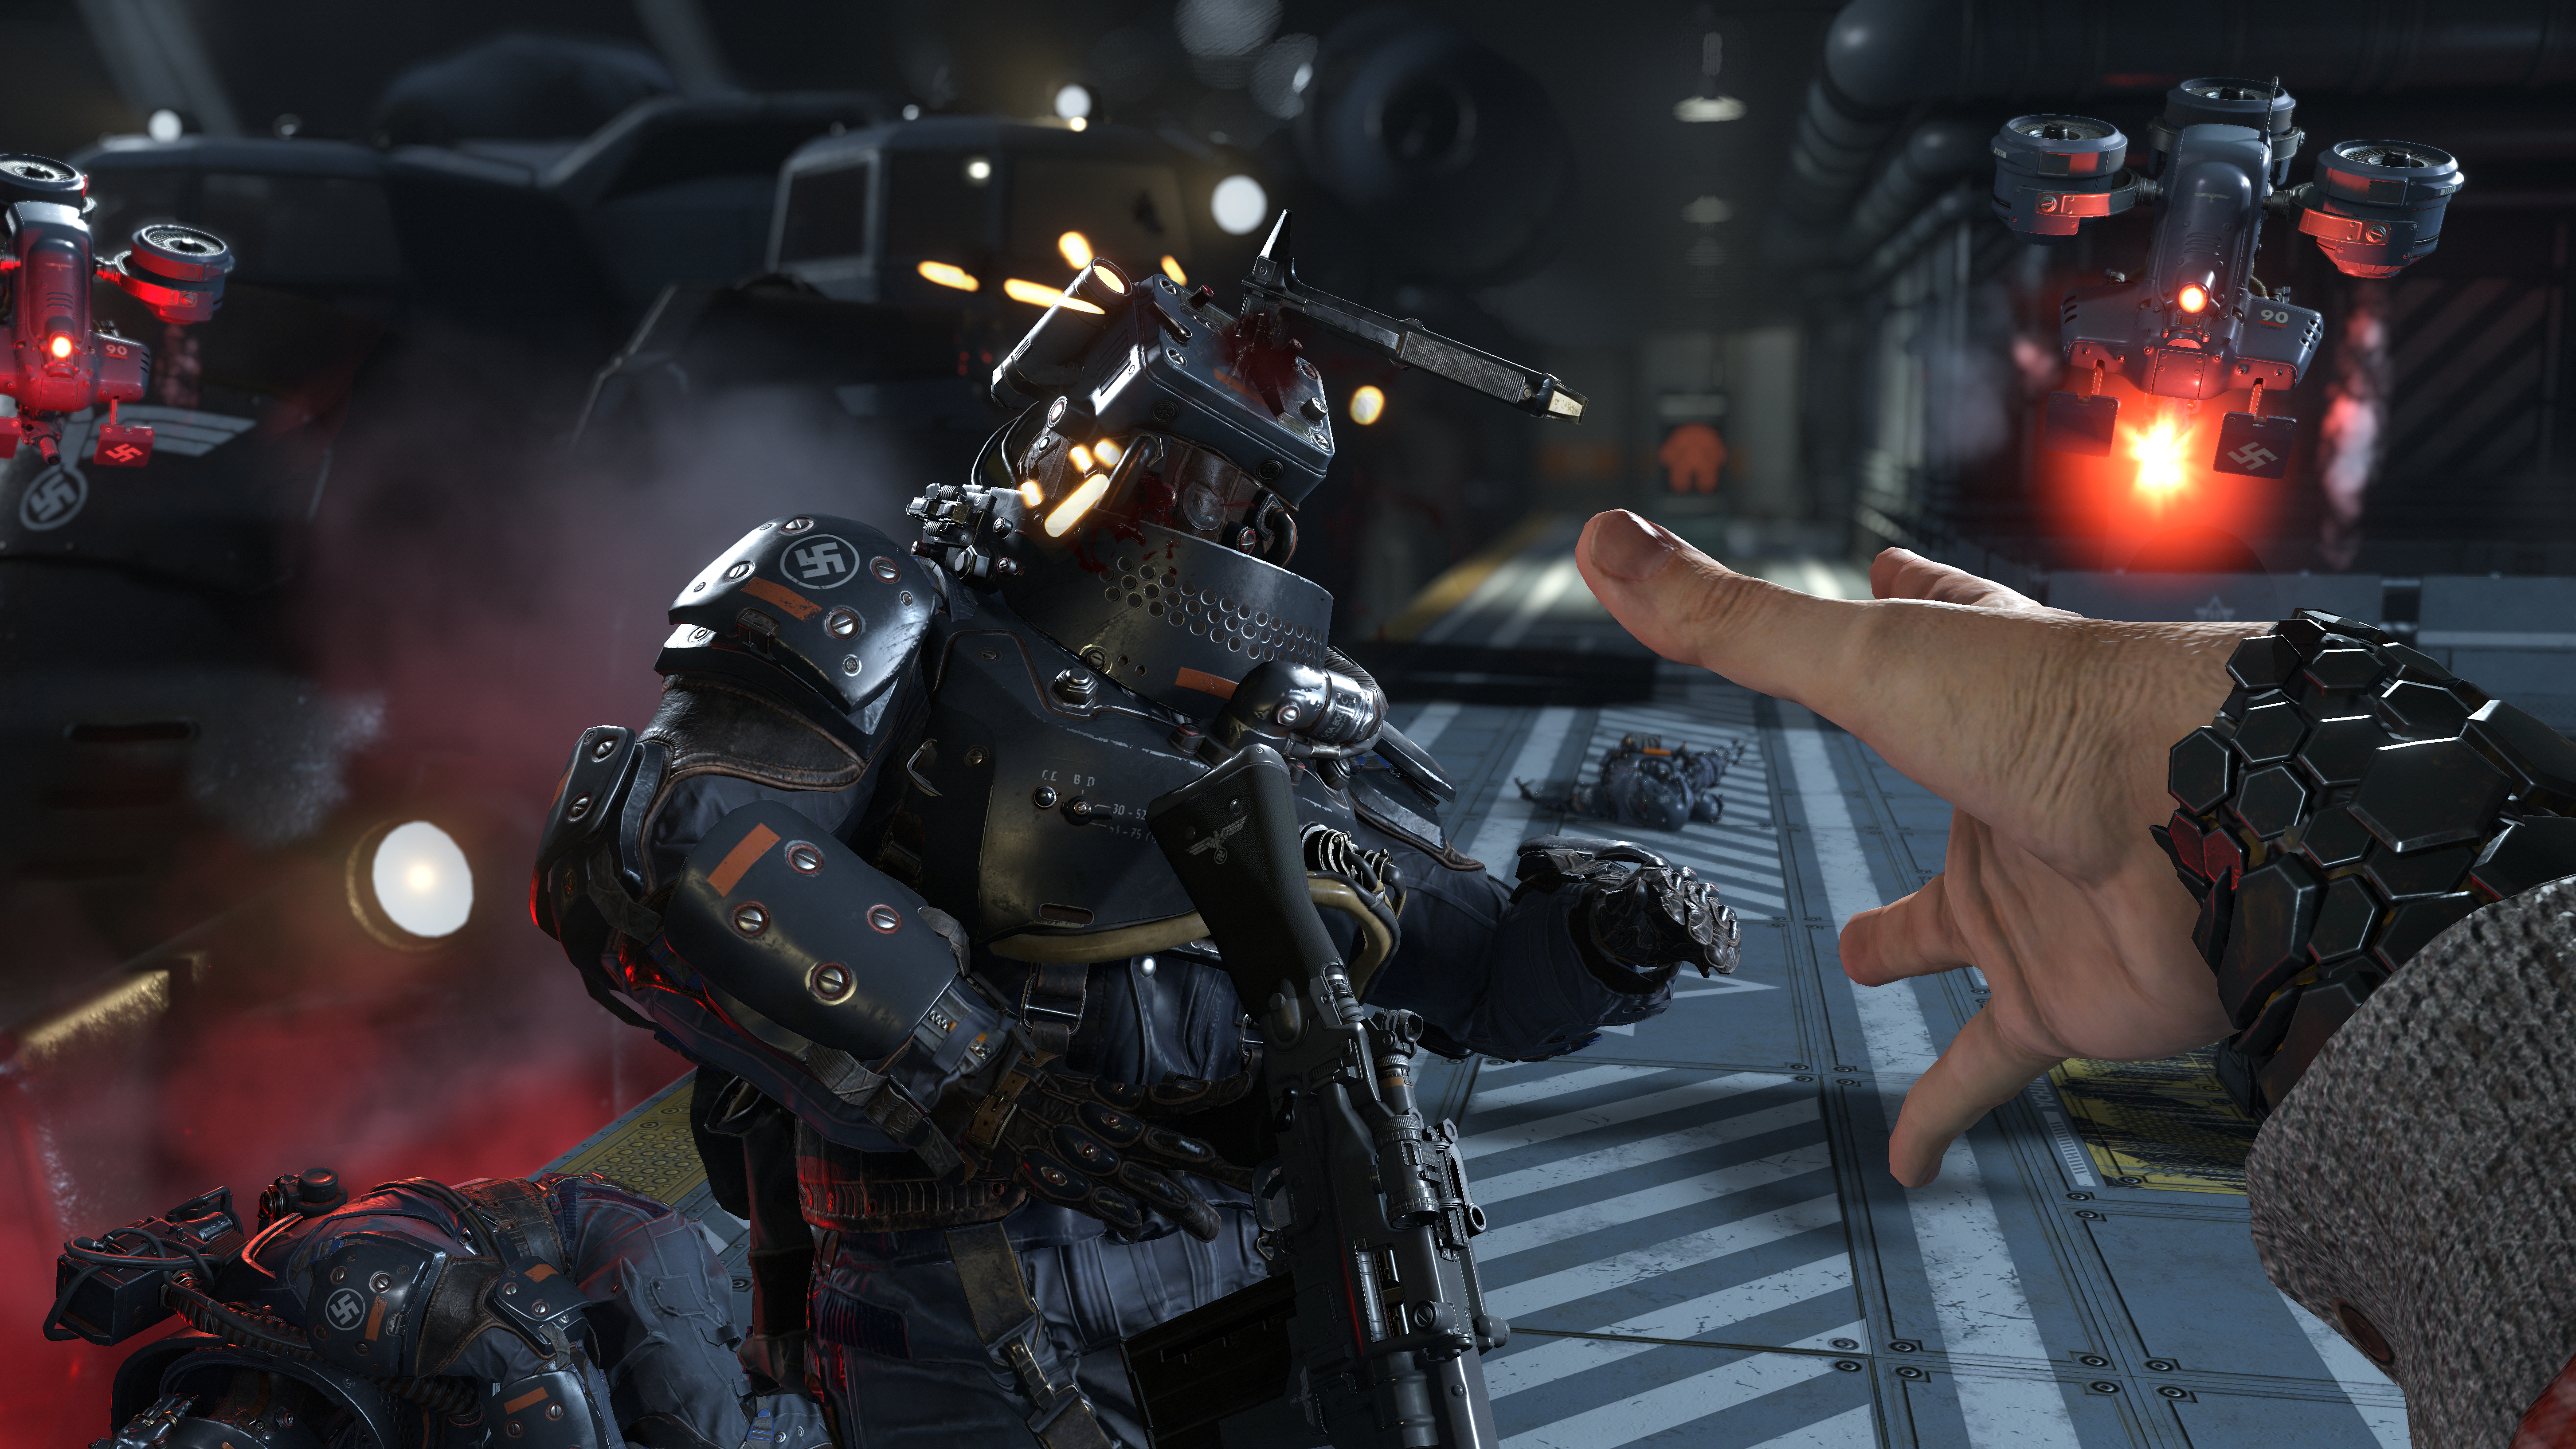 Wolfenstein 2's Nazi-stomping power suit is this year's must-have accessory